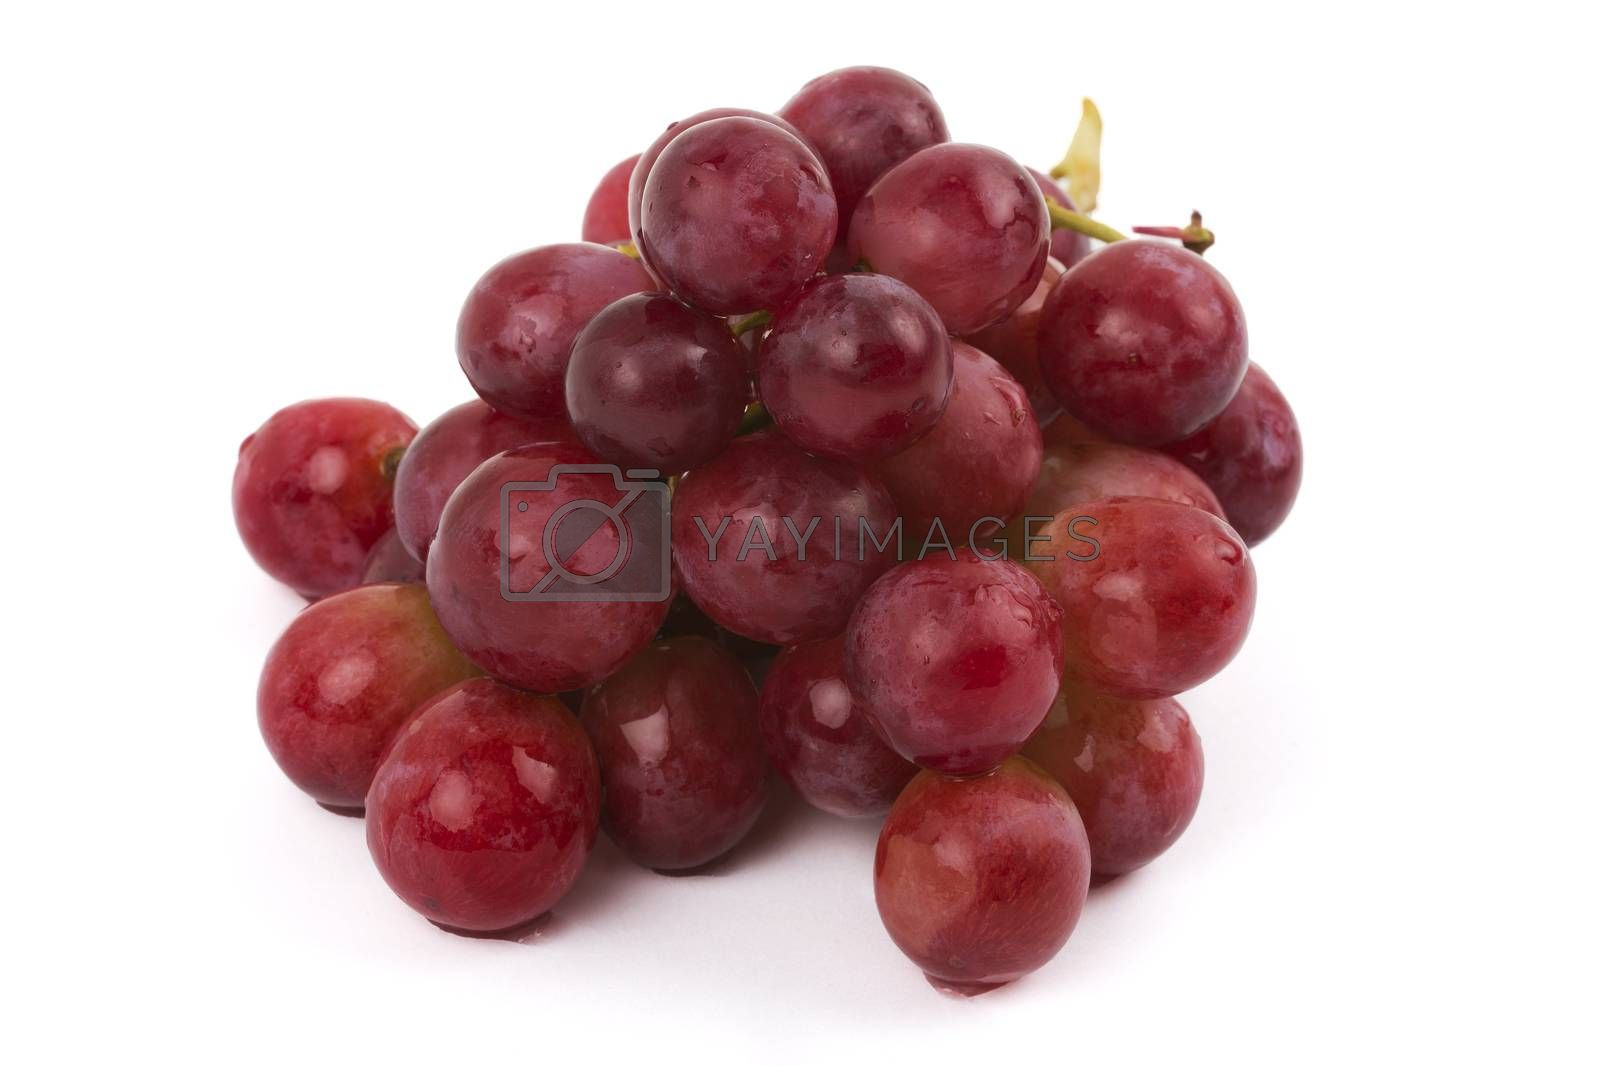 Royalty free image of Fresh grapes by johan10